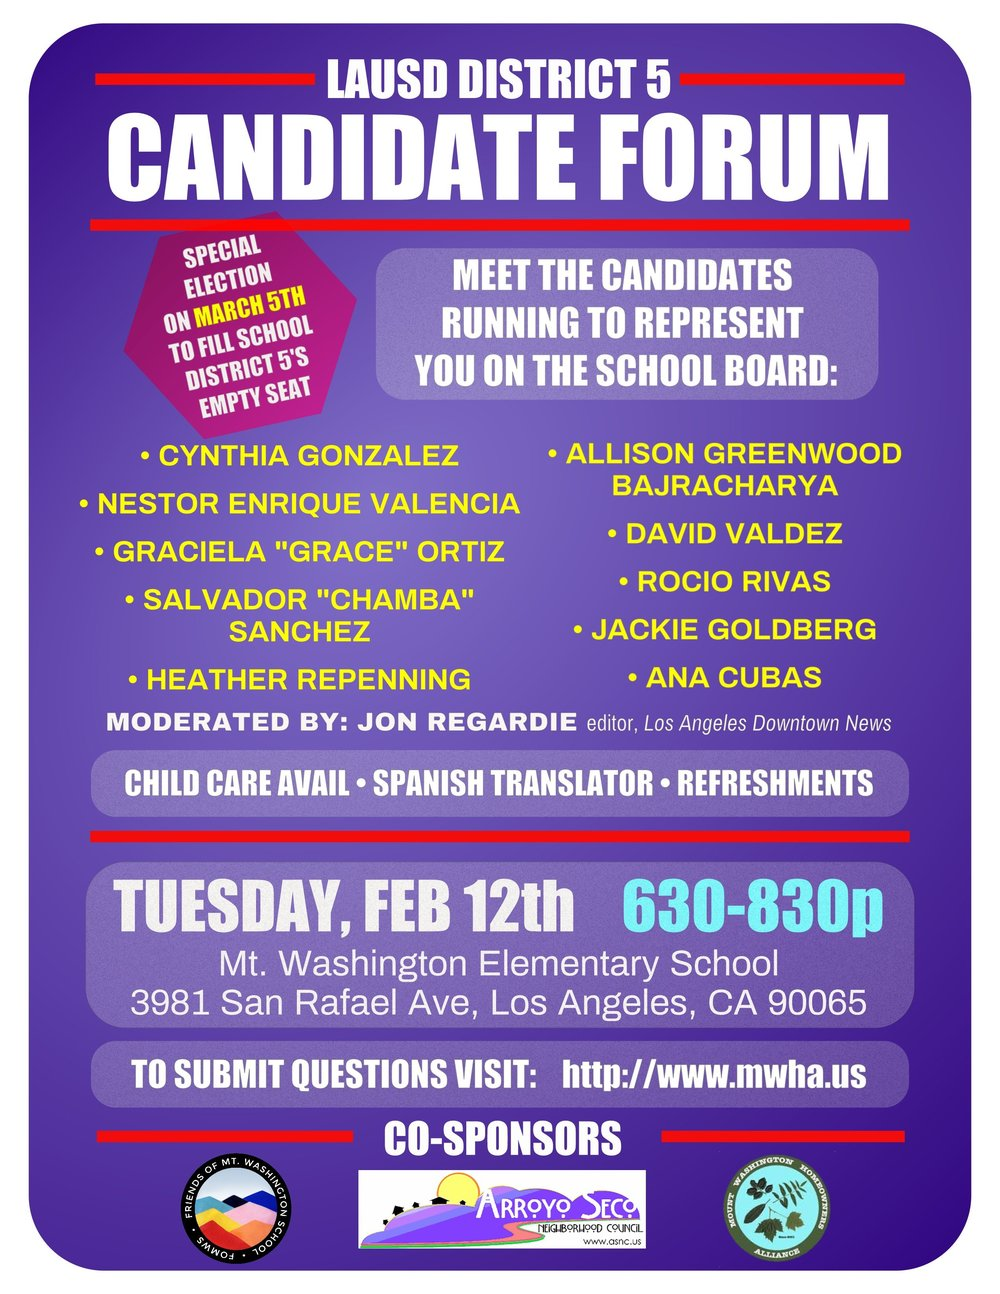 Candidate Forum flyer.jpeg